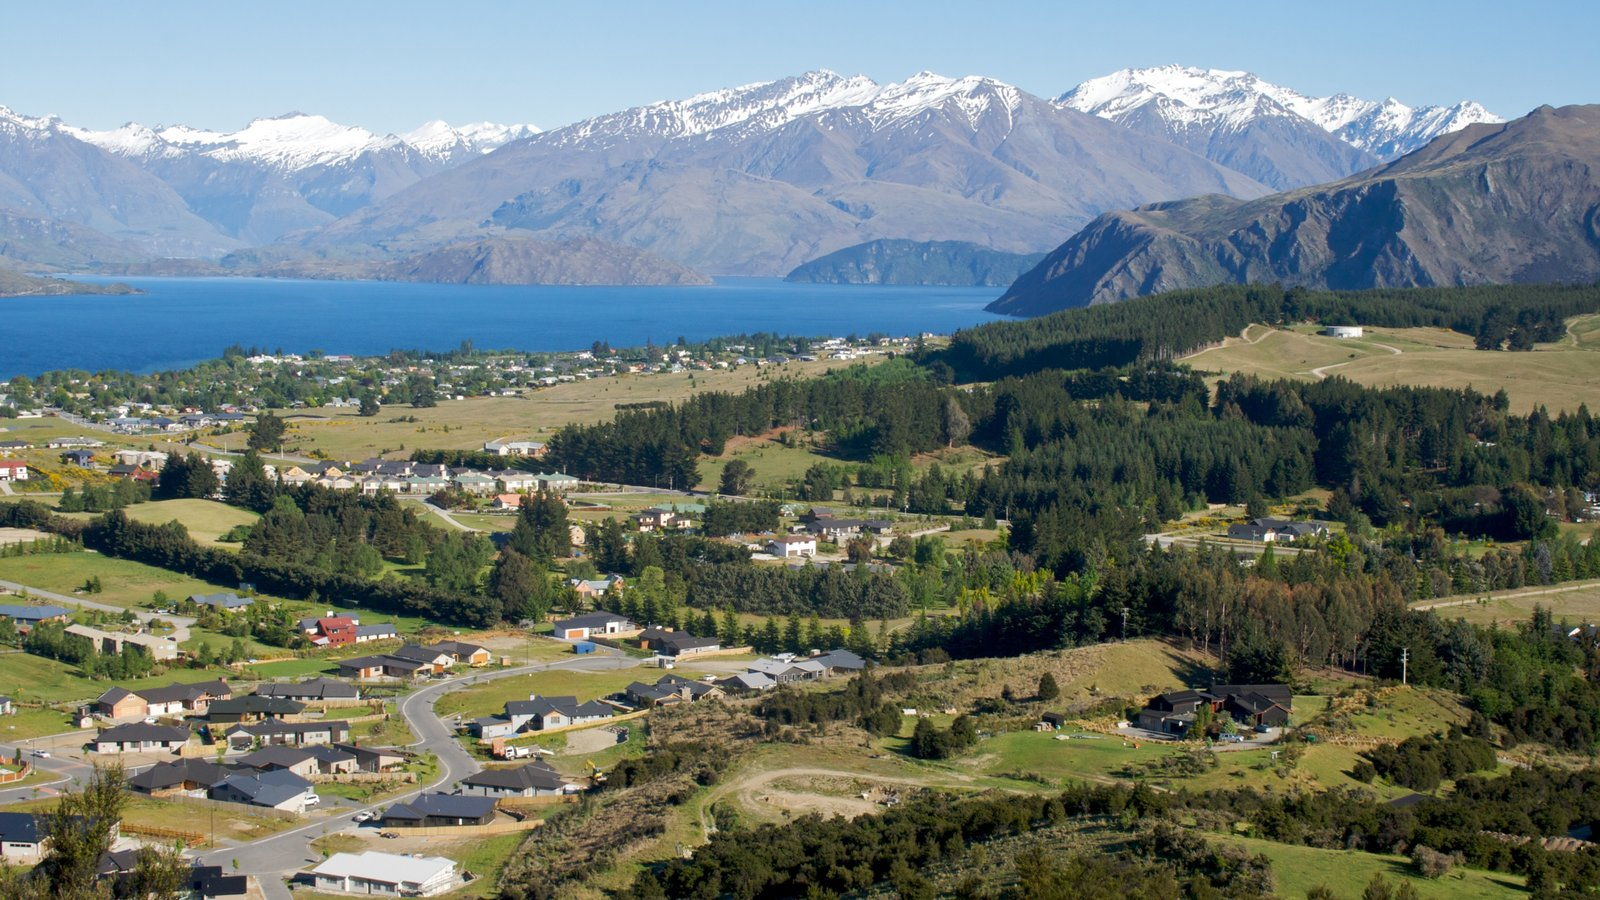 Wanaka featuring landscape views, mountains and a small town or village